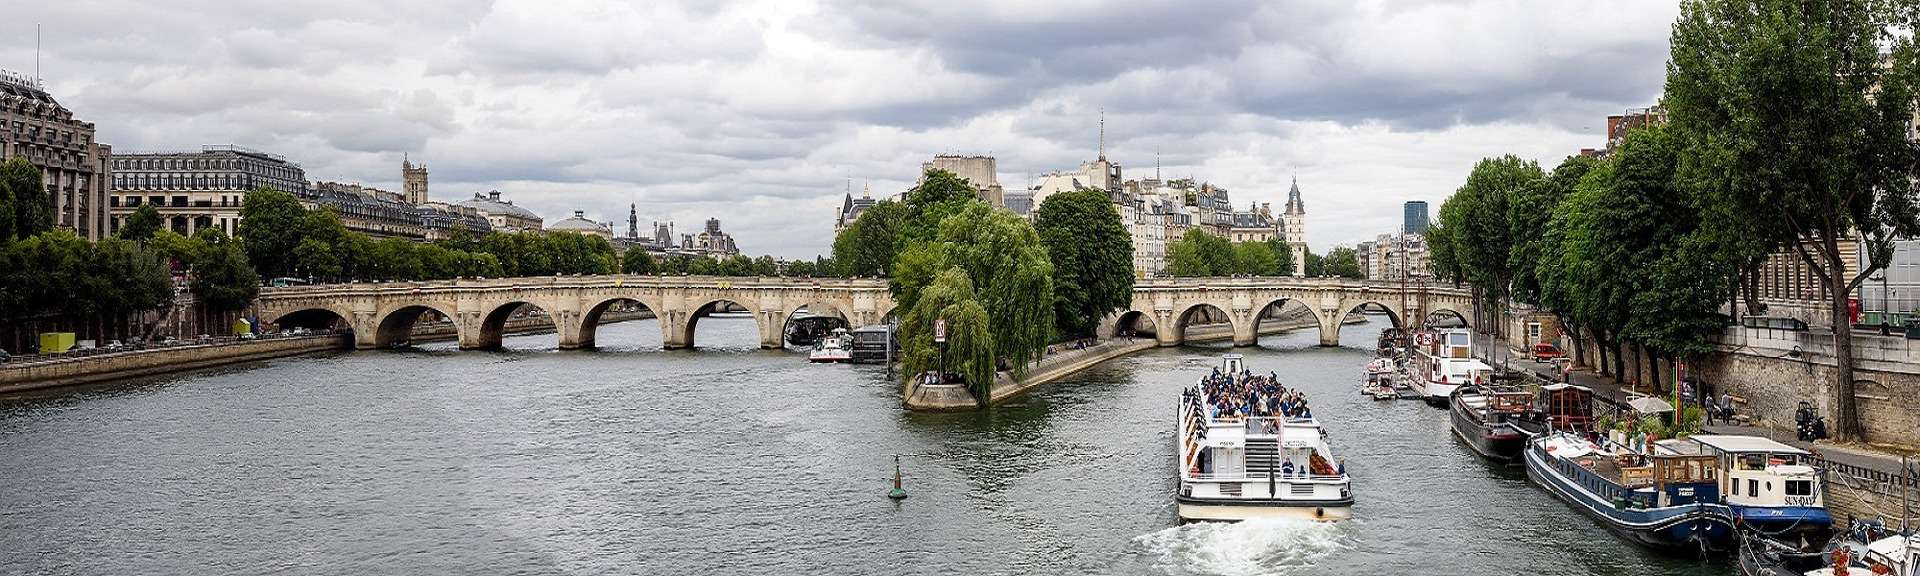 three days in Paris itinerary: What to see in Paris in 3 days? A cruise on the Seine covers already many top sights in Paris!